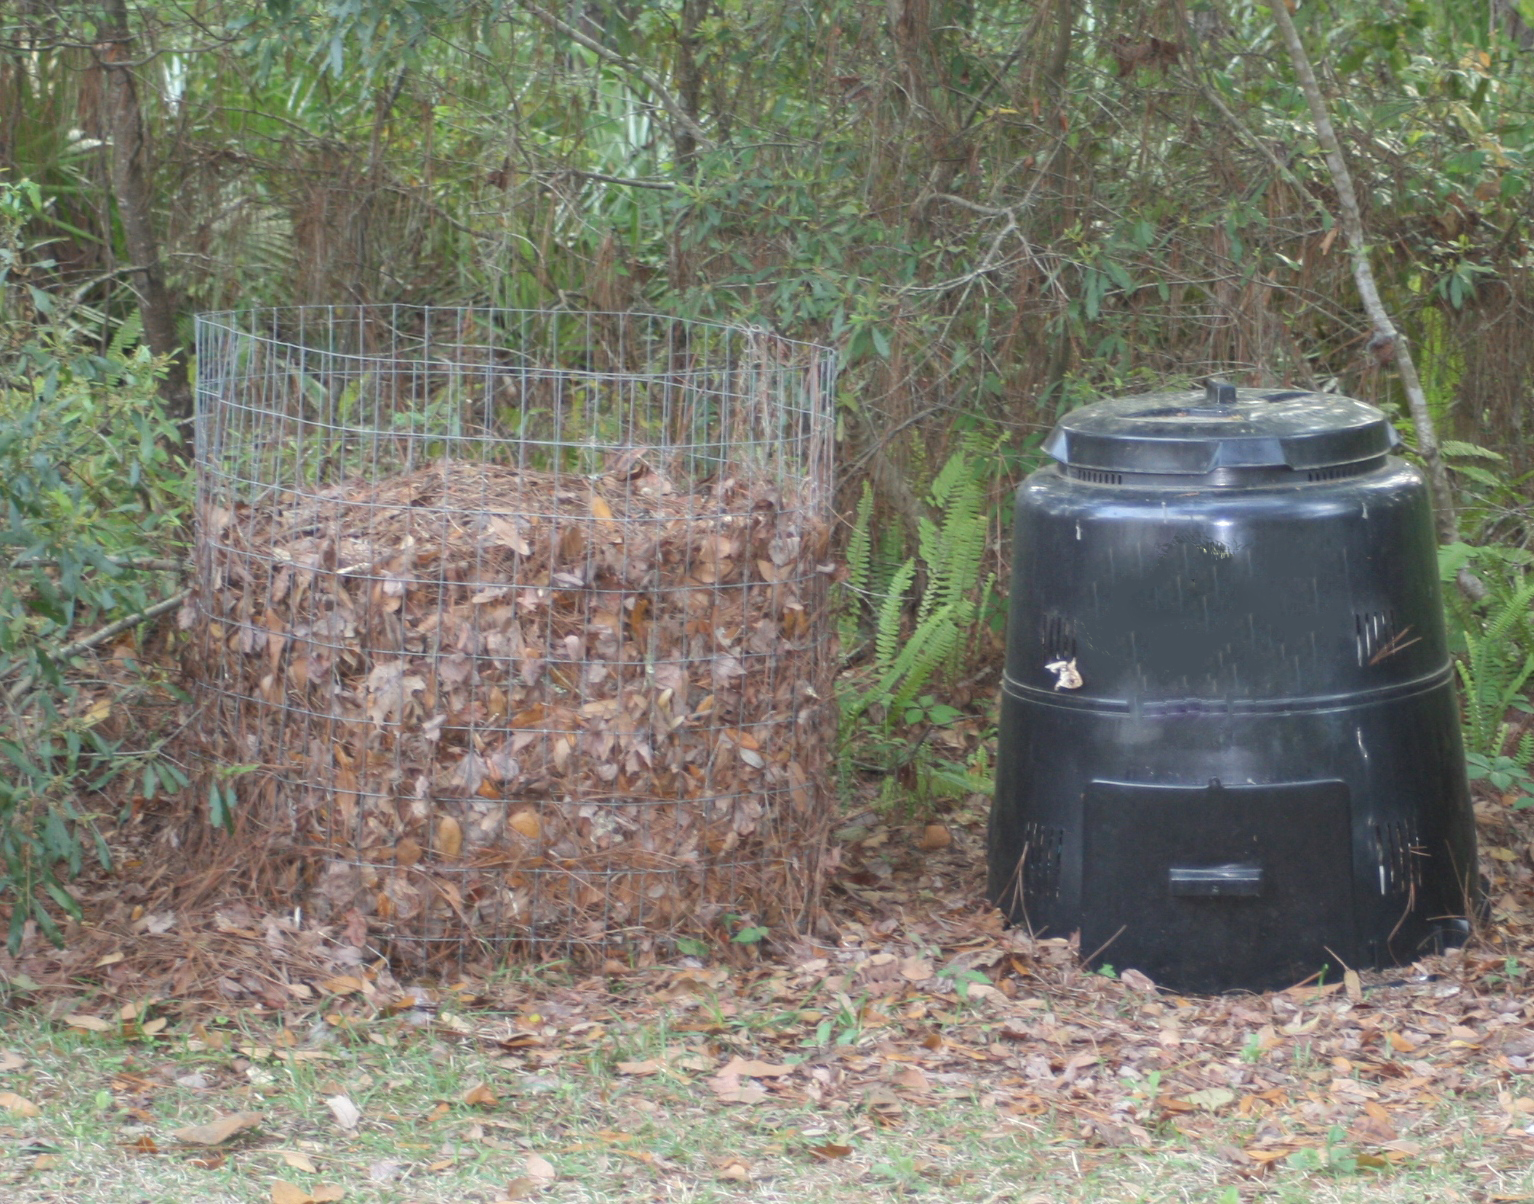 Two different types of backyard composters. One is a wire bin, the other is plastic.